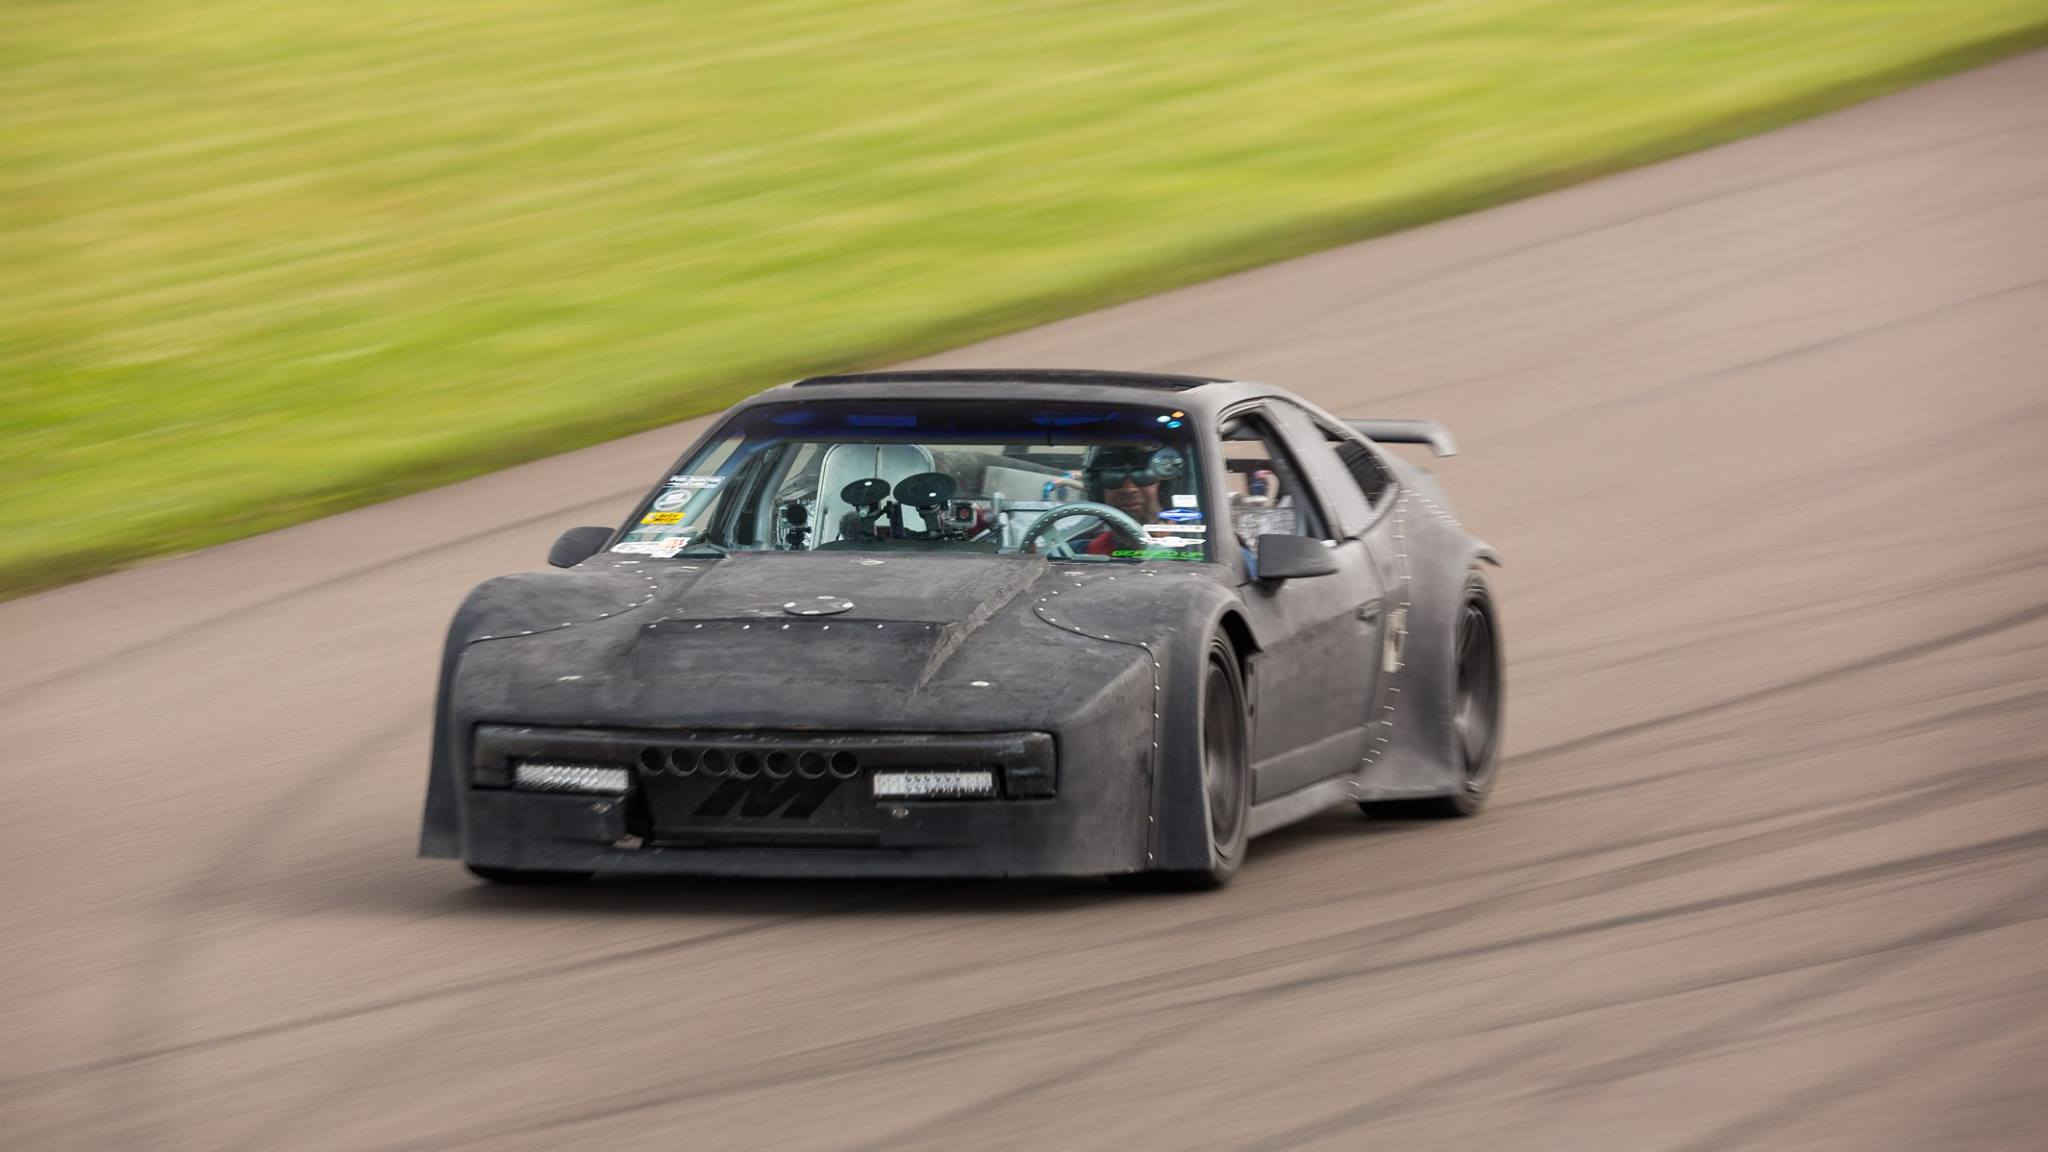 Matt Farah Drives Mike Nasiatkas Widebody Fiero Engine Swap Depot 4g63 Wiring Harness In Our Previous Article On Custom Pontiac We Said Wanted To Drive It For His One Take Series Well Just Released The